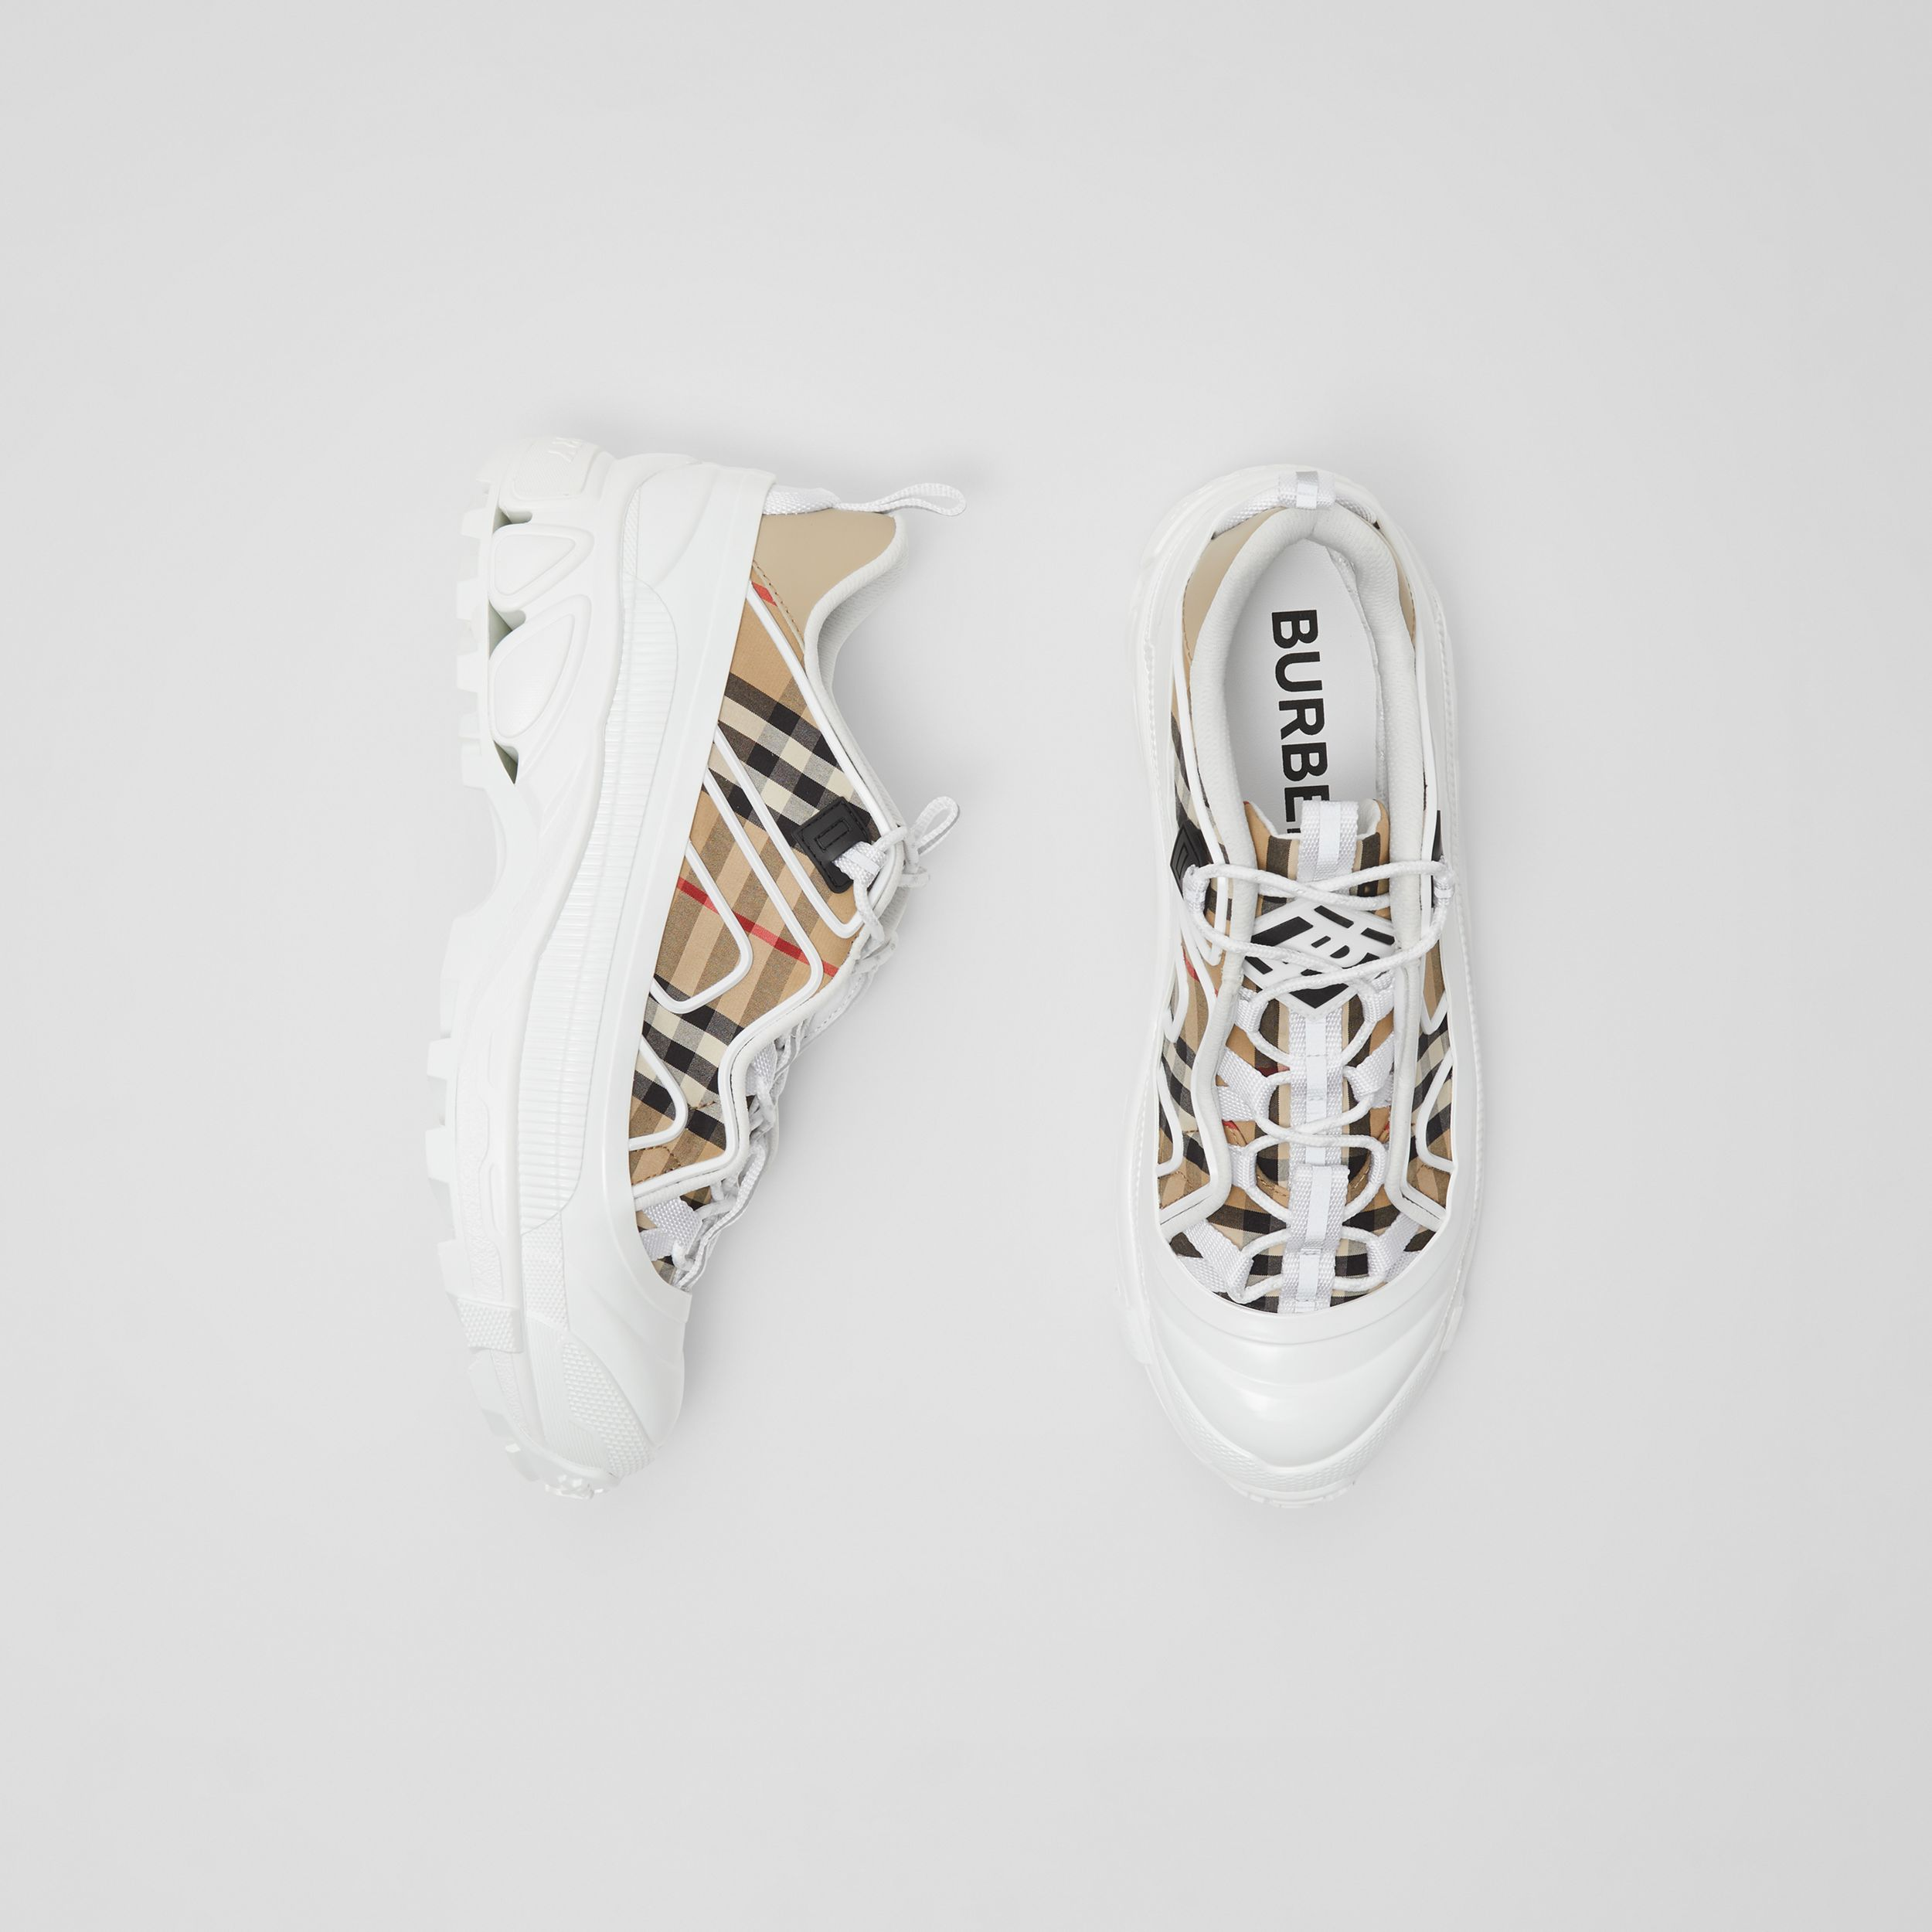 Vintage Check Cotton and Leather Arthur Sneakers in Archive Beige - Women | Burberry - 1